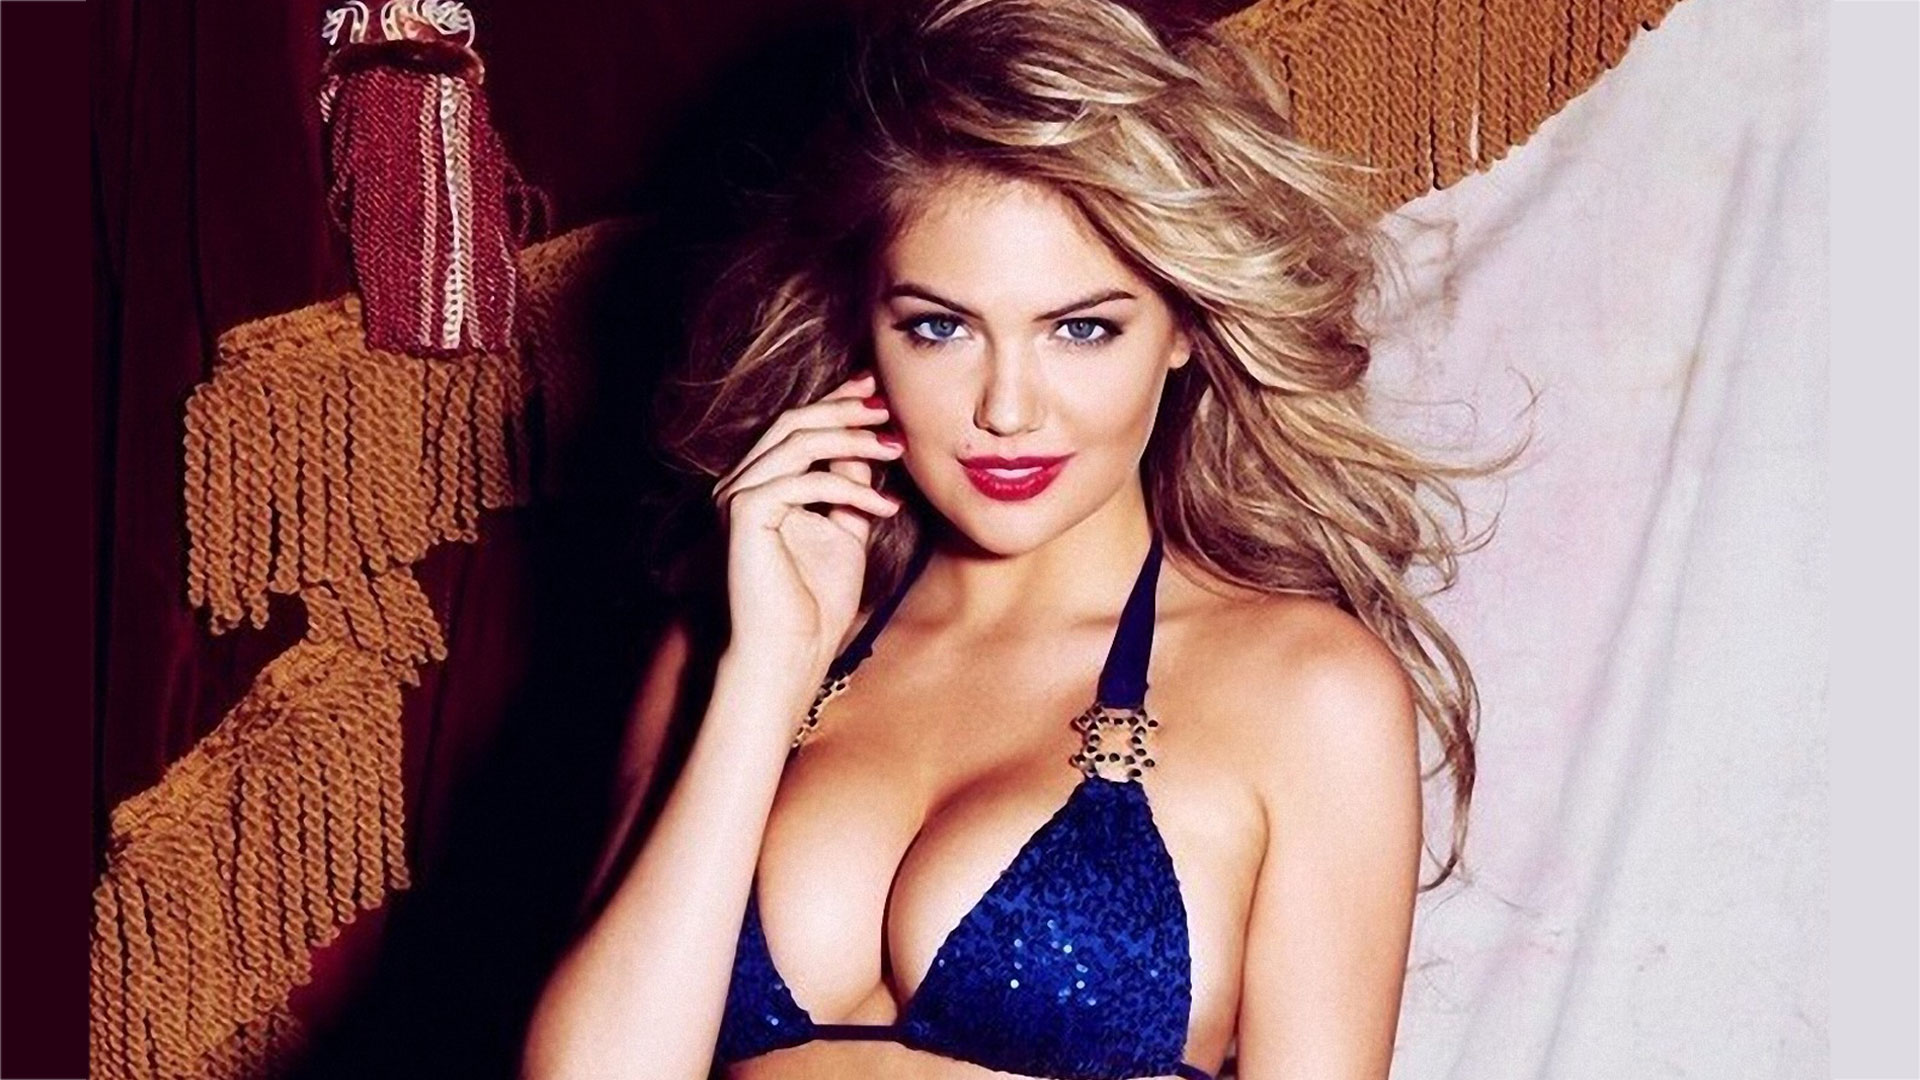 Kate Upton Hot in Blue